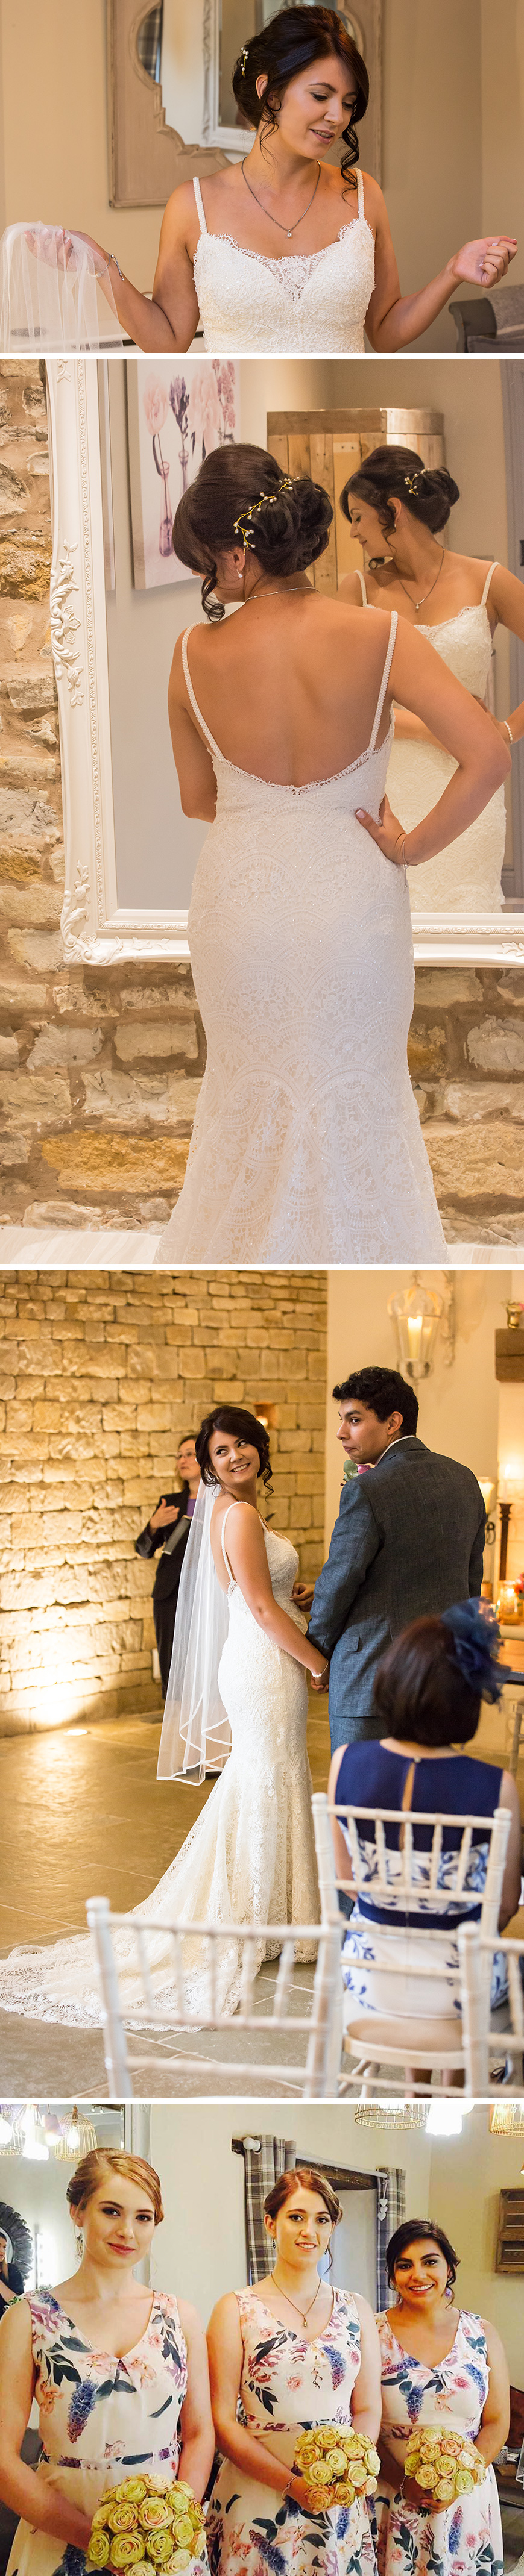 Real Wedding - Alice & Jose's Late Summer Wedding at Blackwell Grange | CHWV